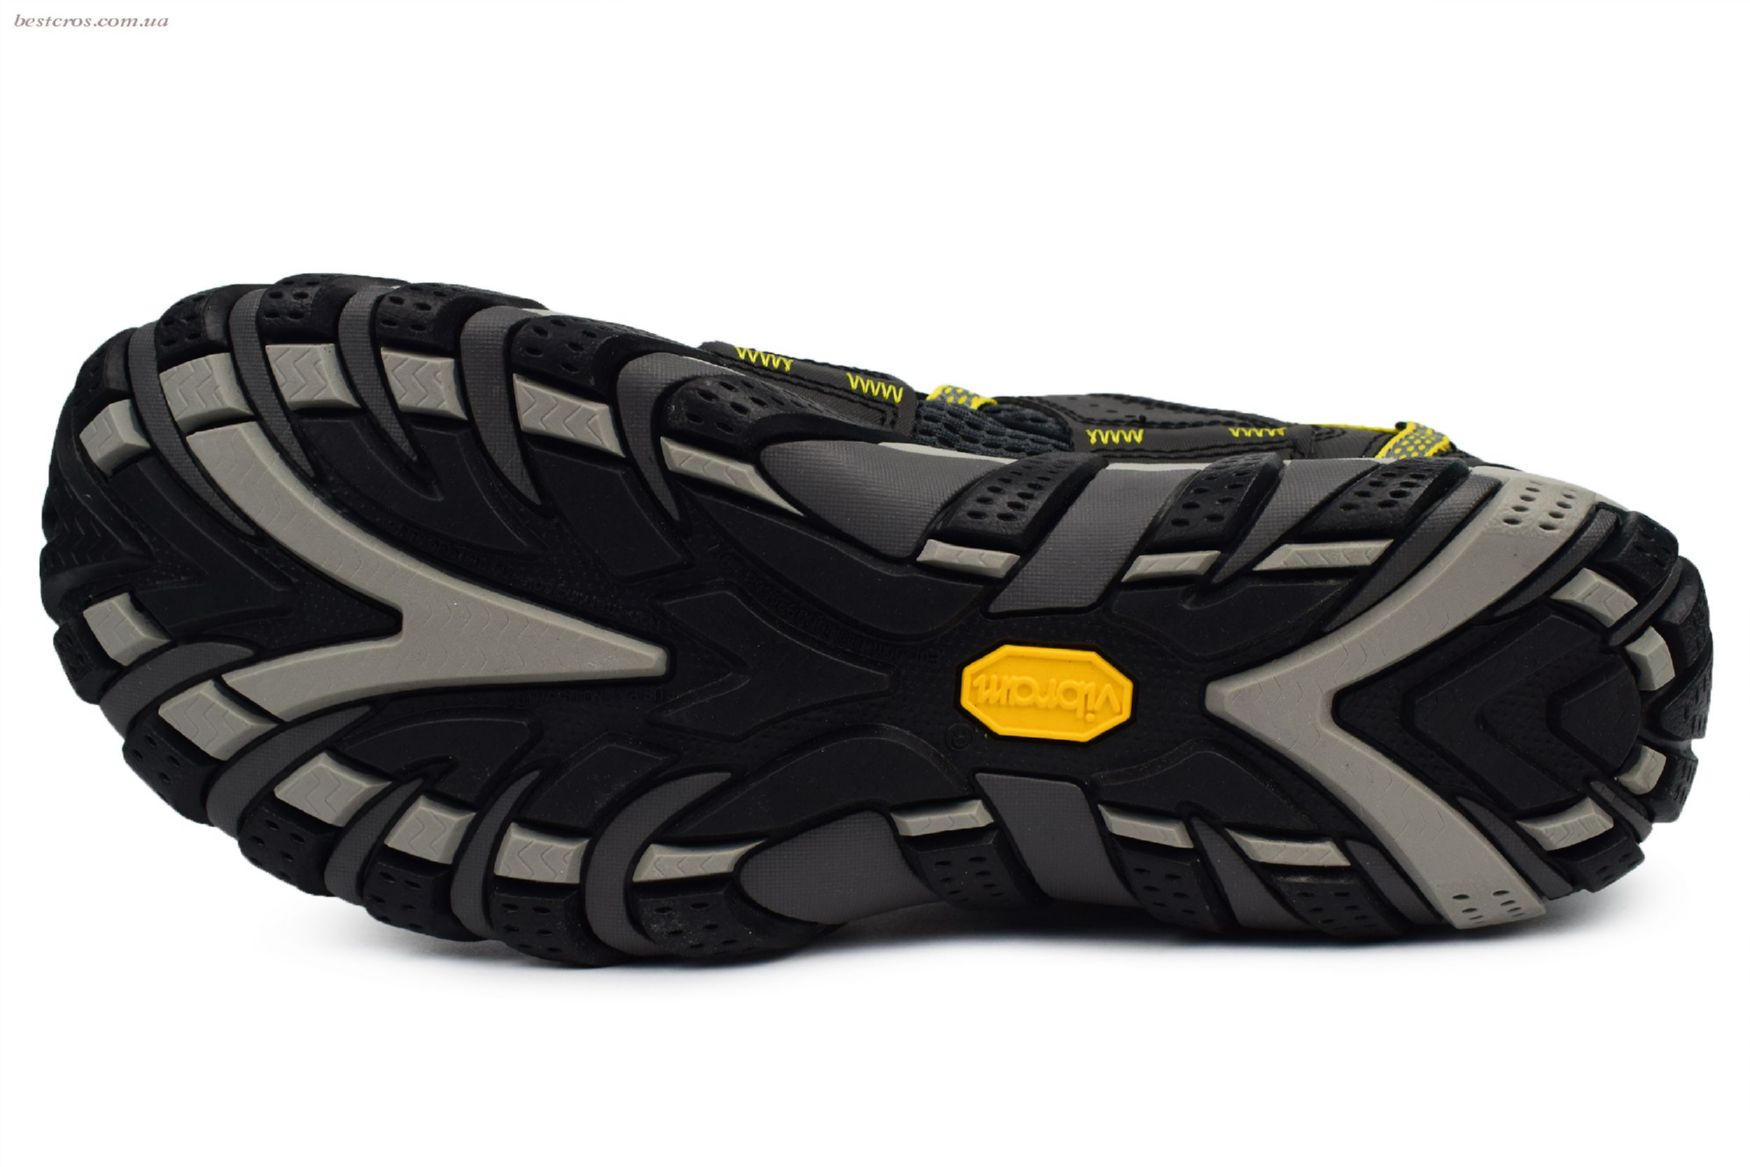 Мужские кроссовки Merrell Waterpro Maipo Black/Yellow - фото №3